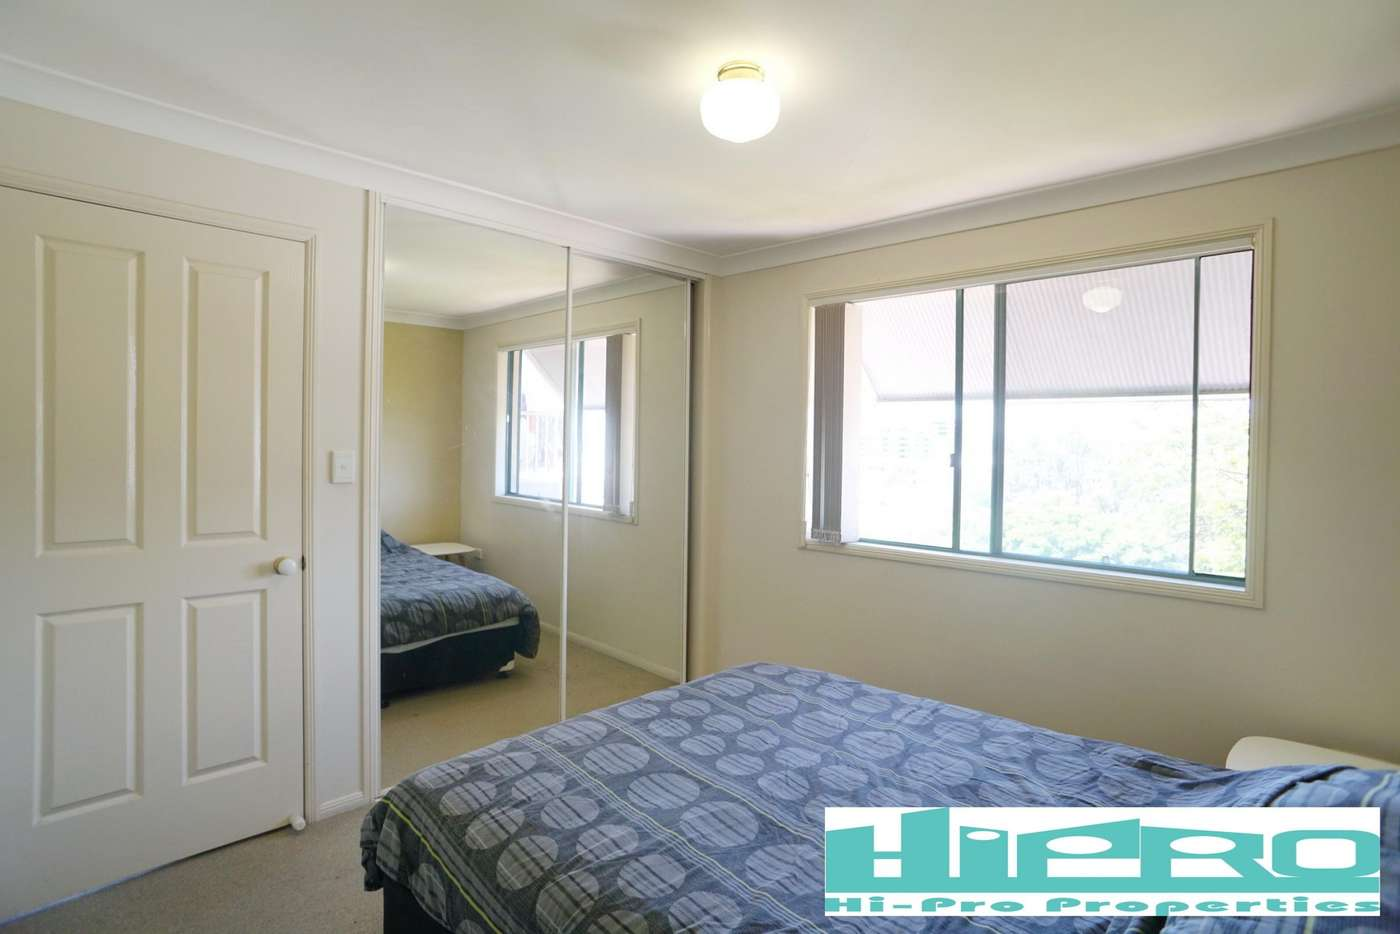 Seventh view of Homely apartment listing, 51 Leopard Street, Kangaroo Point QLD 4169